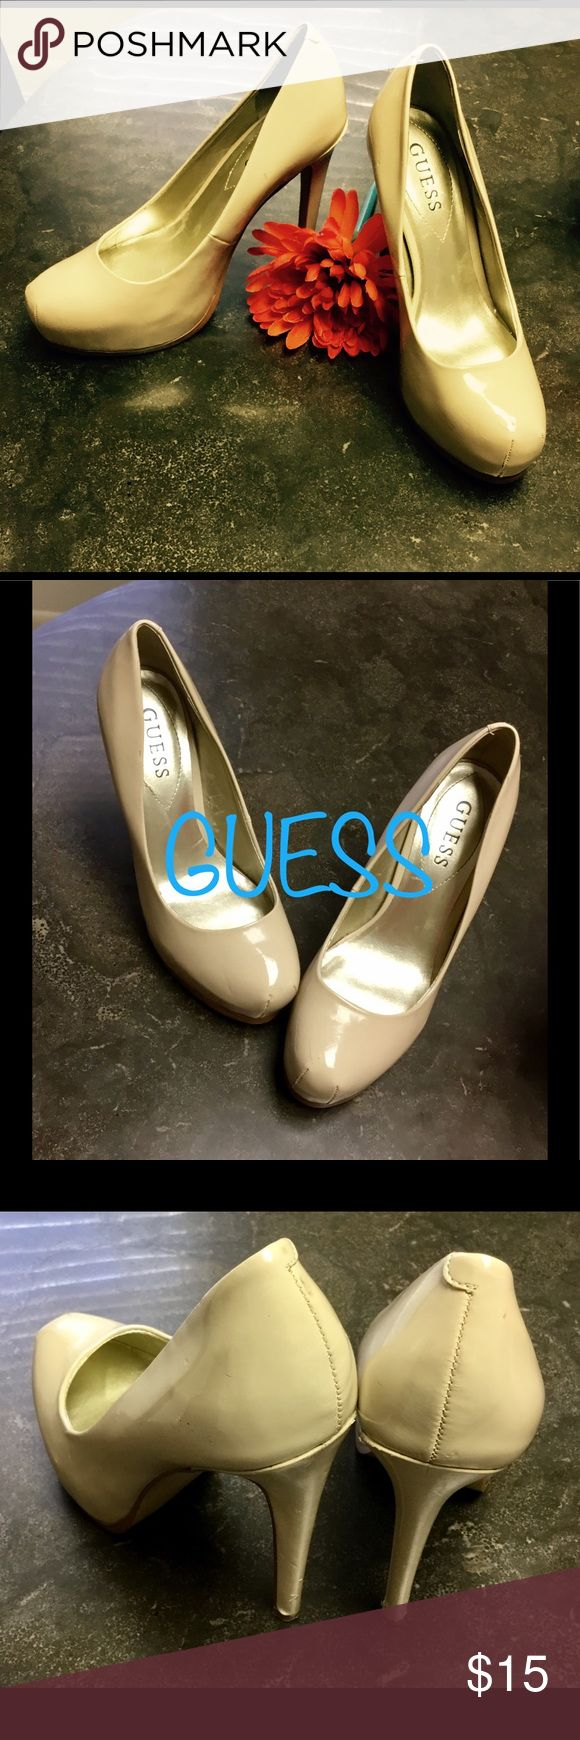 Guess Beige Pumps Size 6 Guess Beige Pumps Size 6. In good condition! Only minor Wear (pictured). Great for many occasions. Please feel free to check out my other items and I offer bundle pricing! #Discount #Bundle #Cheap #Gift #Deal #Gift #Kotas Will offer free card and wrapping, if sent as gift! Please include occasion and special message. Guess Shoes